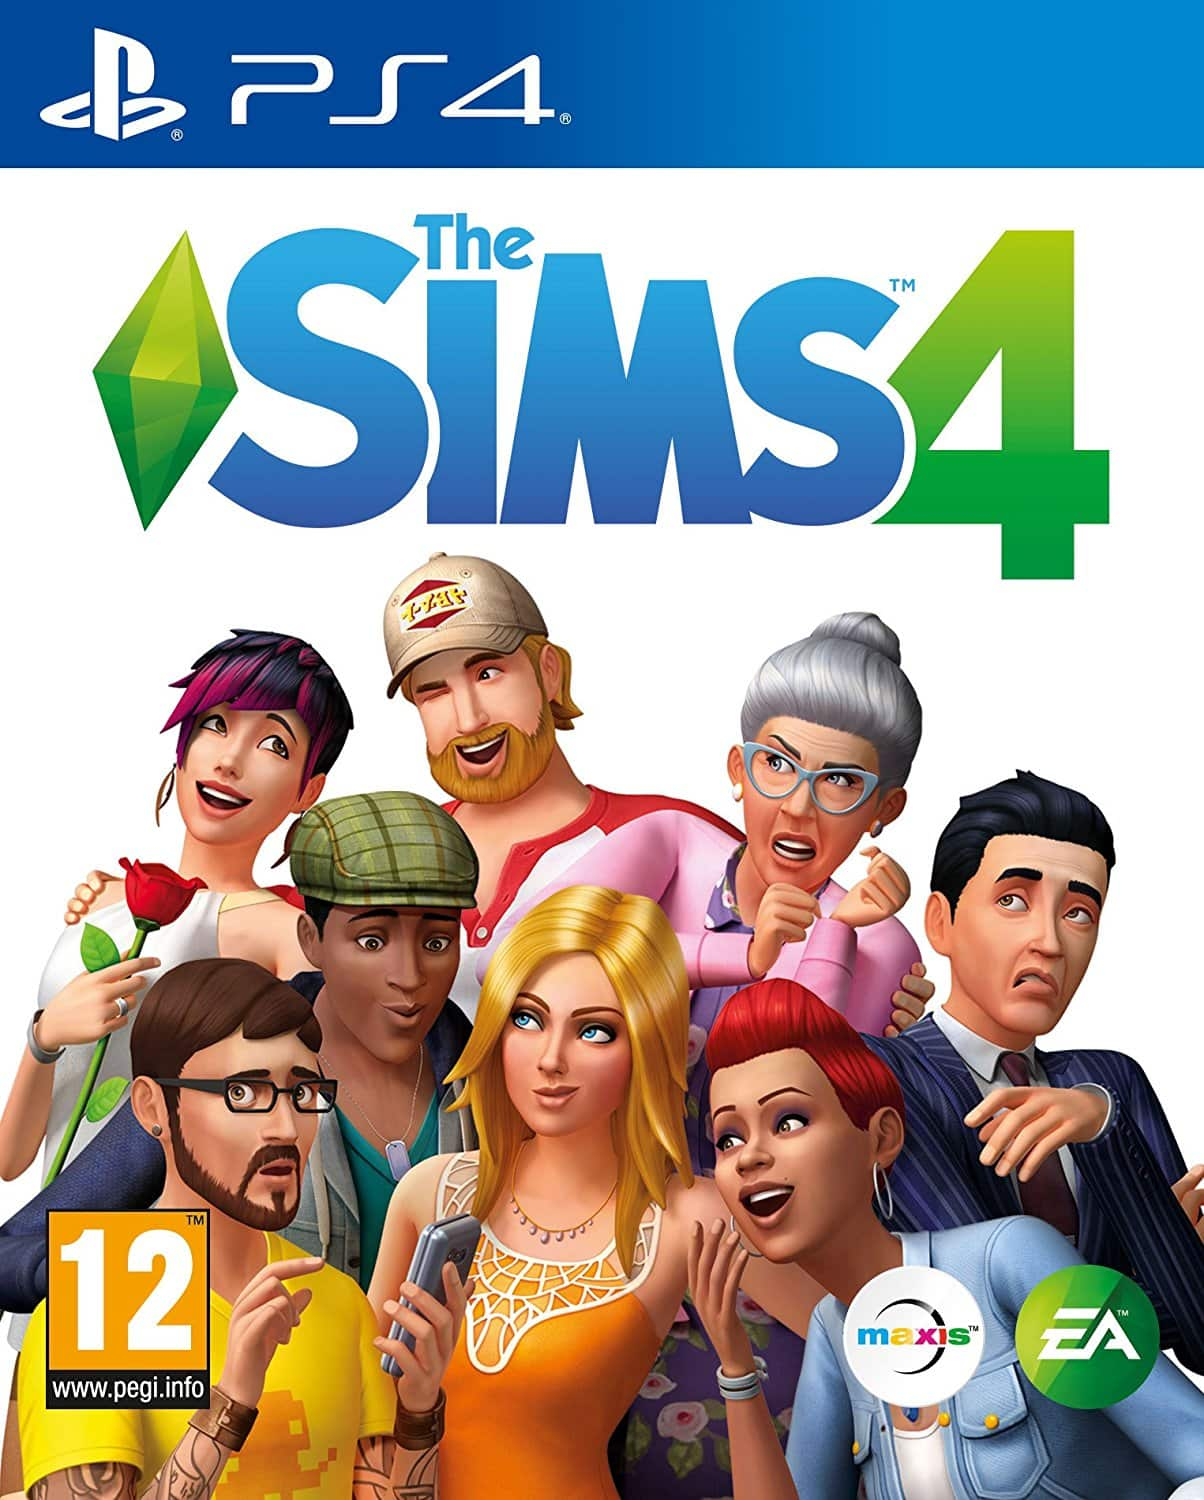 The Sims 4 - PlayStation 4 | Xbox One @BestBuy + 3.99 shipping + 5% Back in Rewards $25